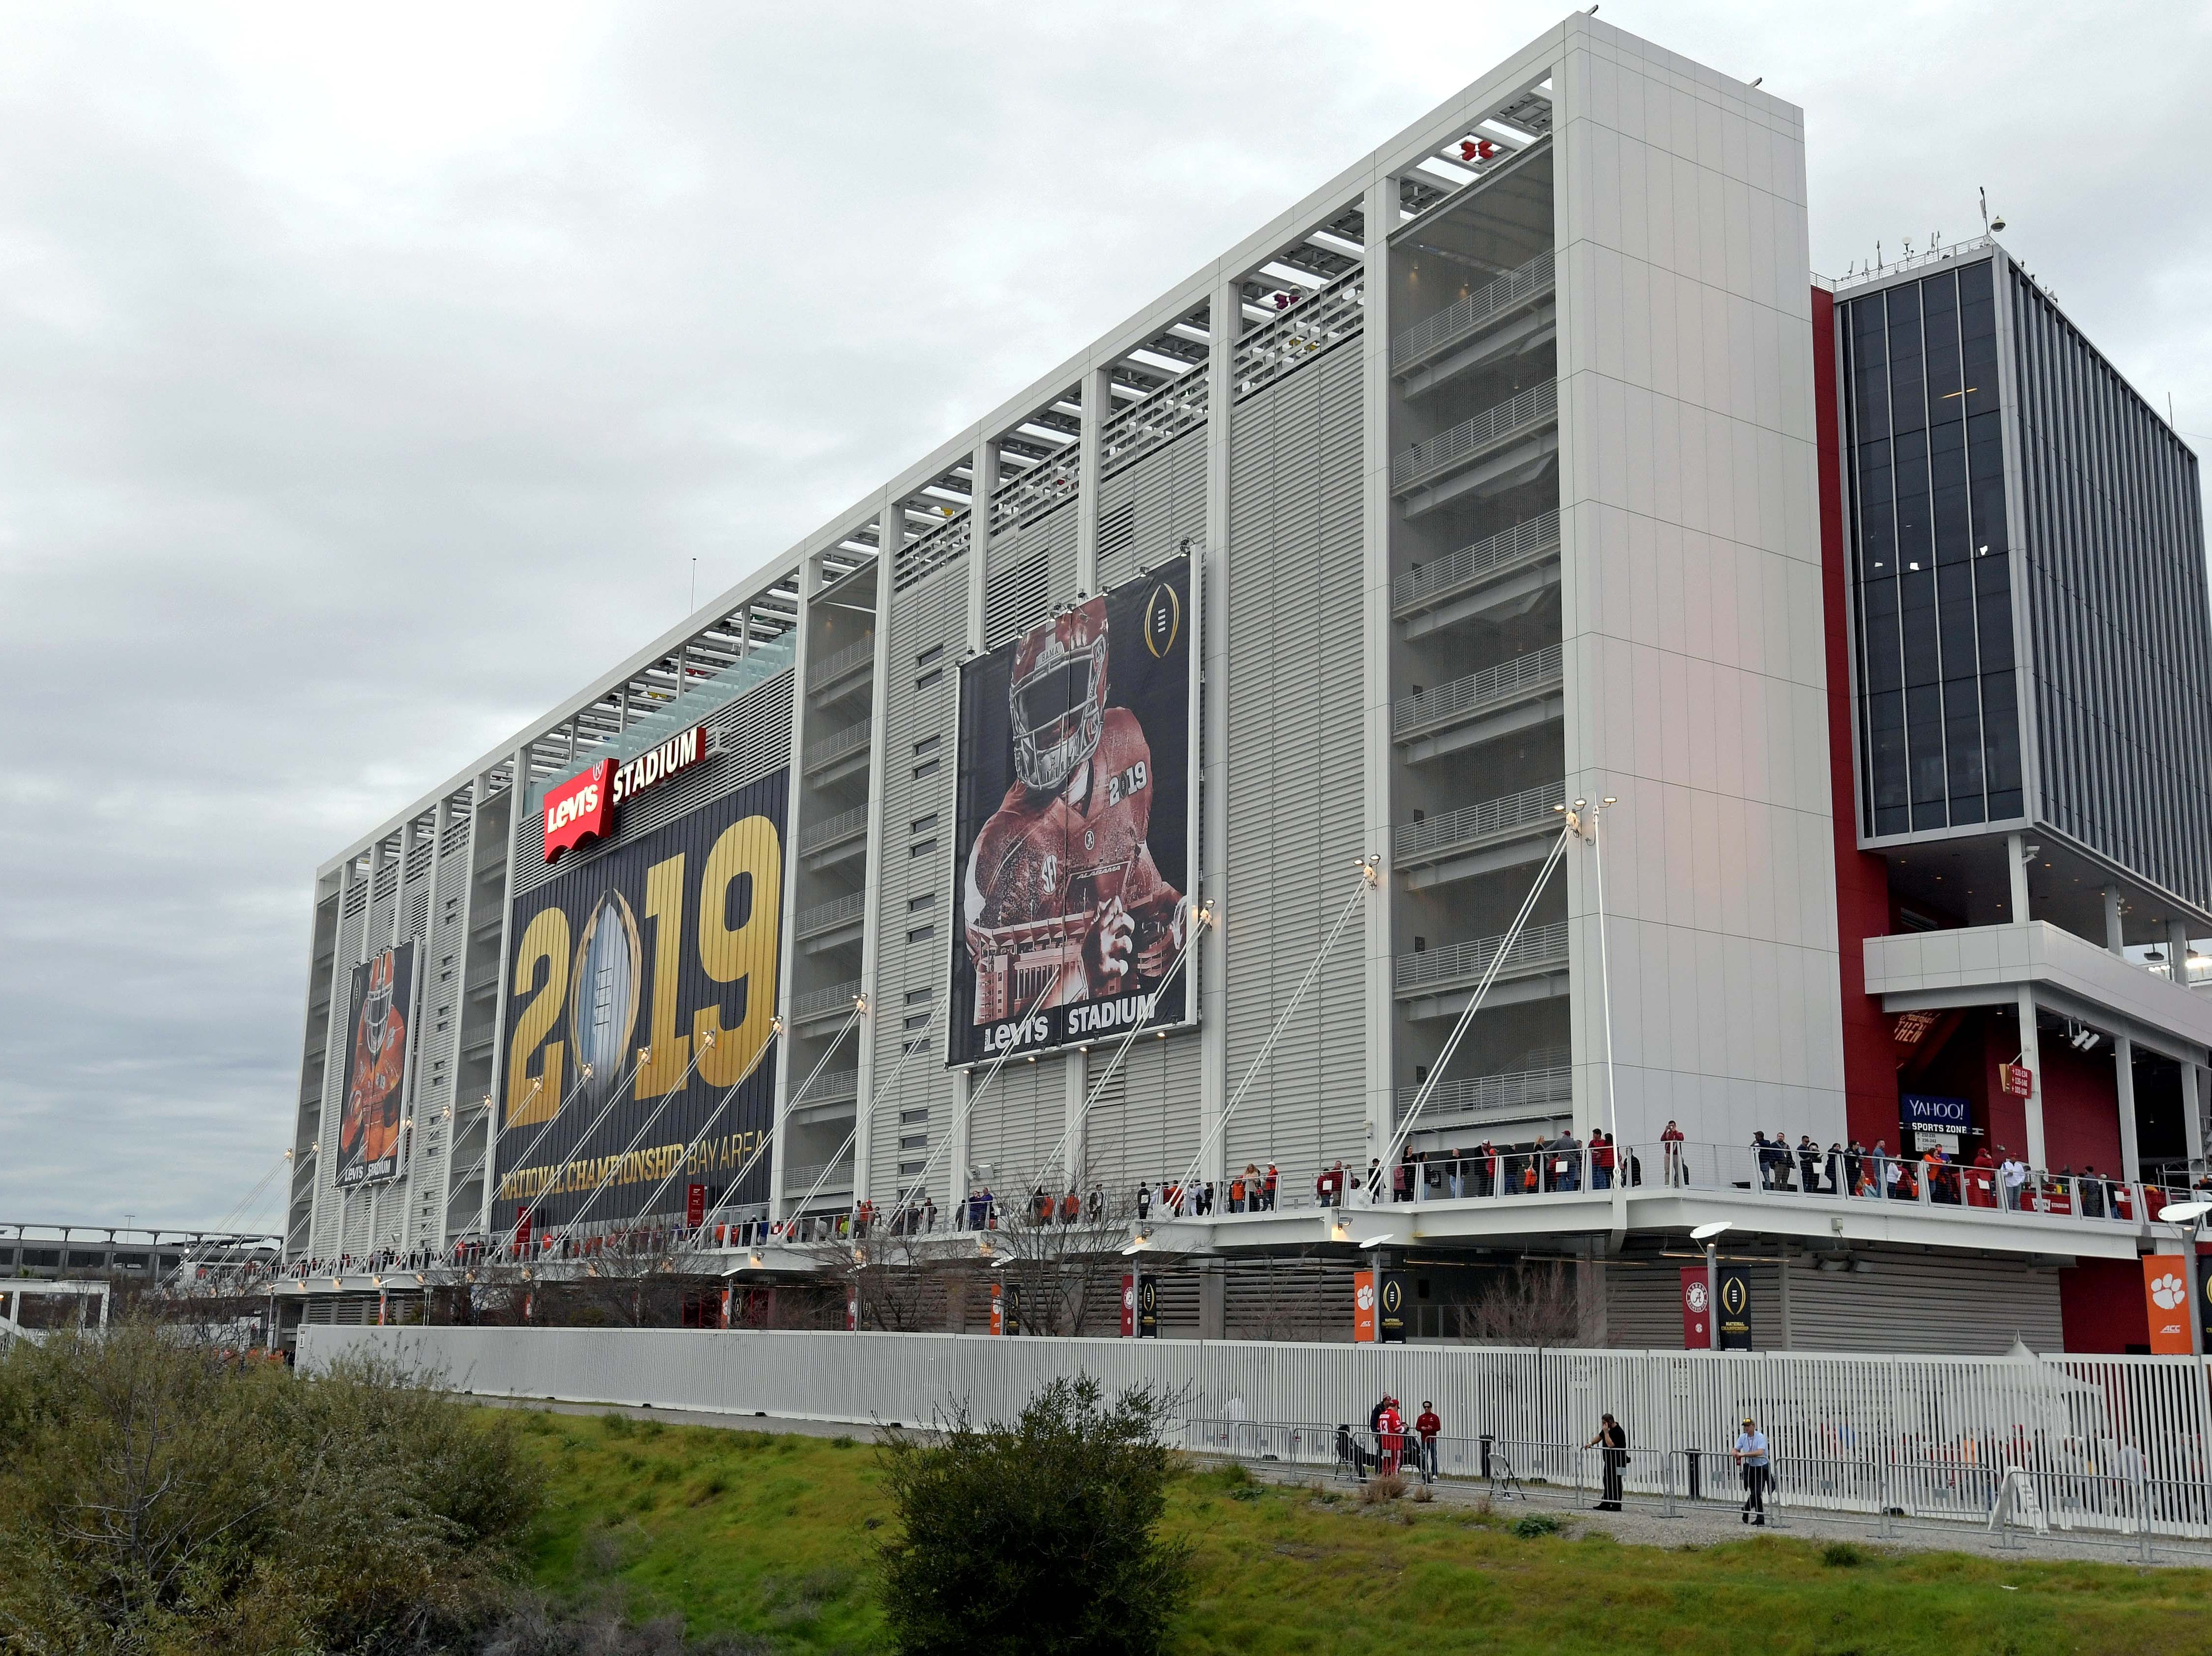 A view of Levi's Stadium before the game.